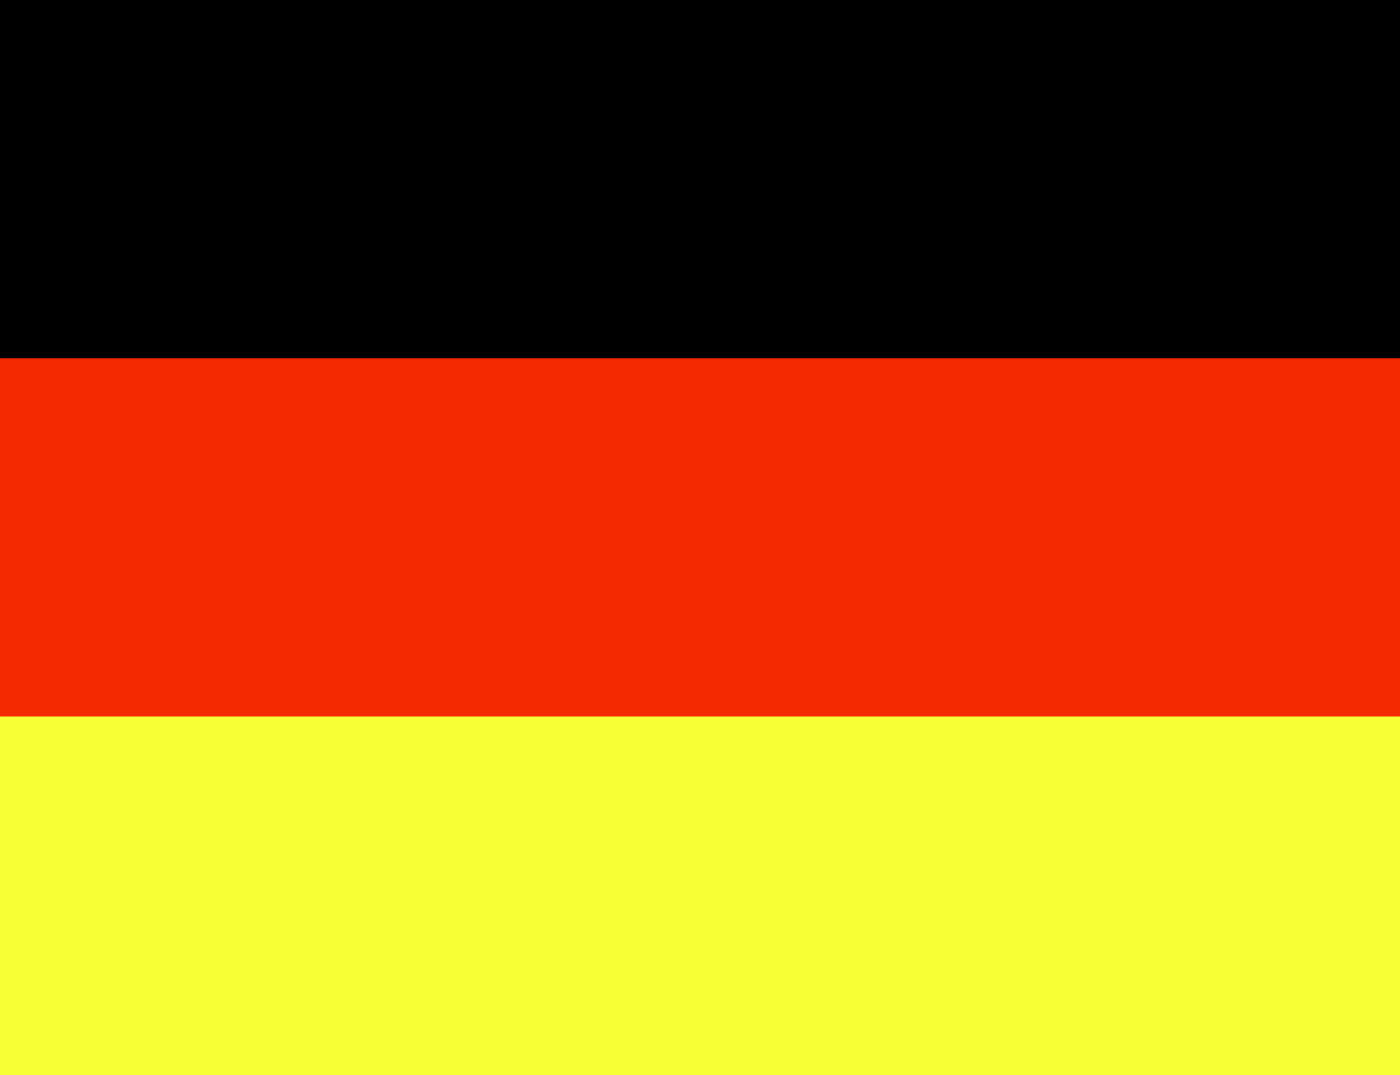 http://1.bp.blogspot.com/_9IpeyjVVR84/S-tHDdI6nJI/AAAAAAAAAGs/LyOhZw36_MU/s1600/Germany-Flag-wallpaper-28-1400x1075.jpg